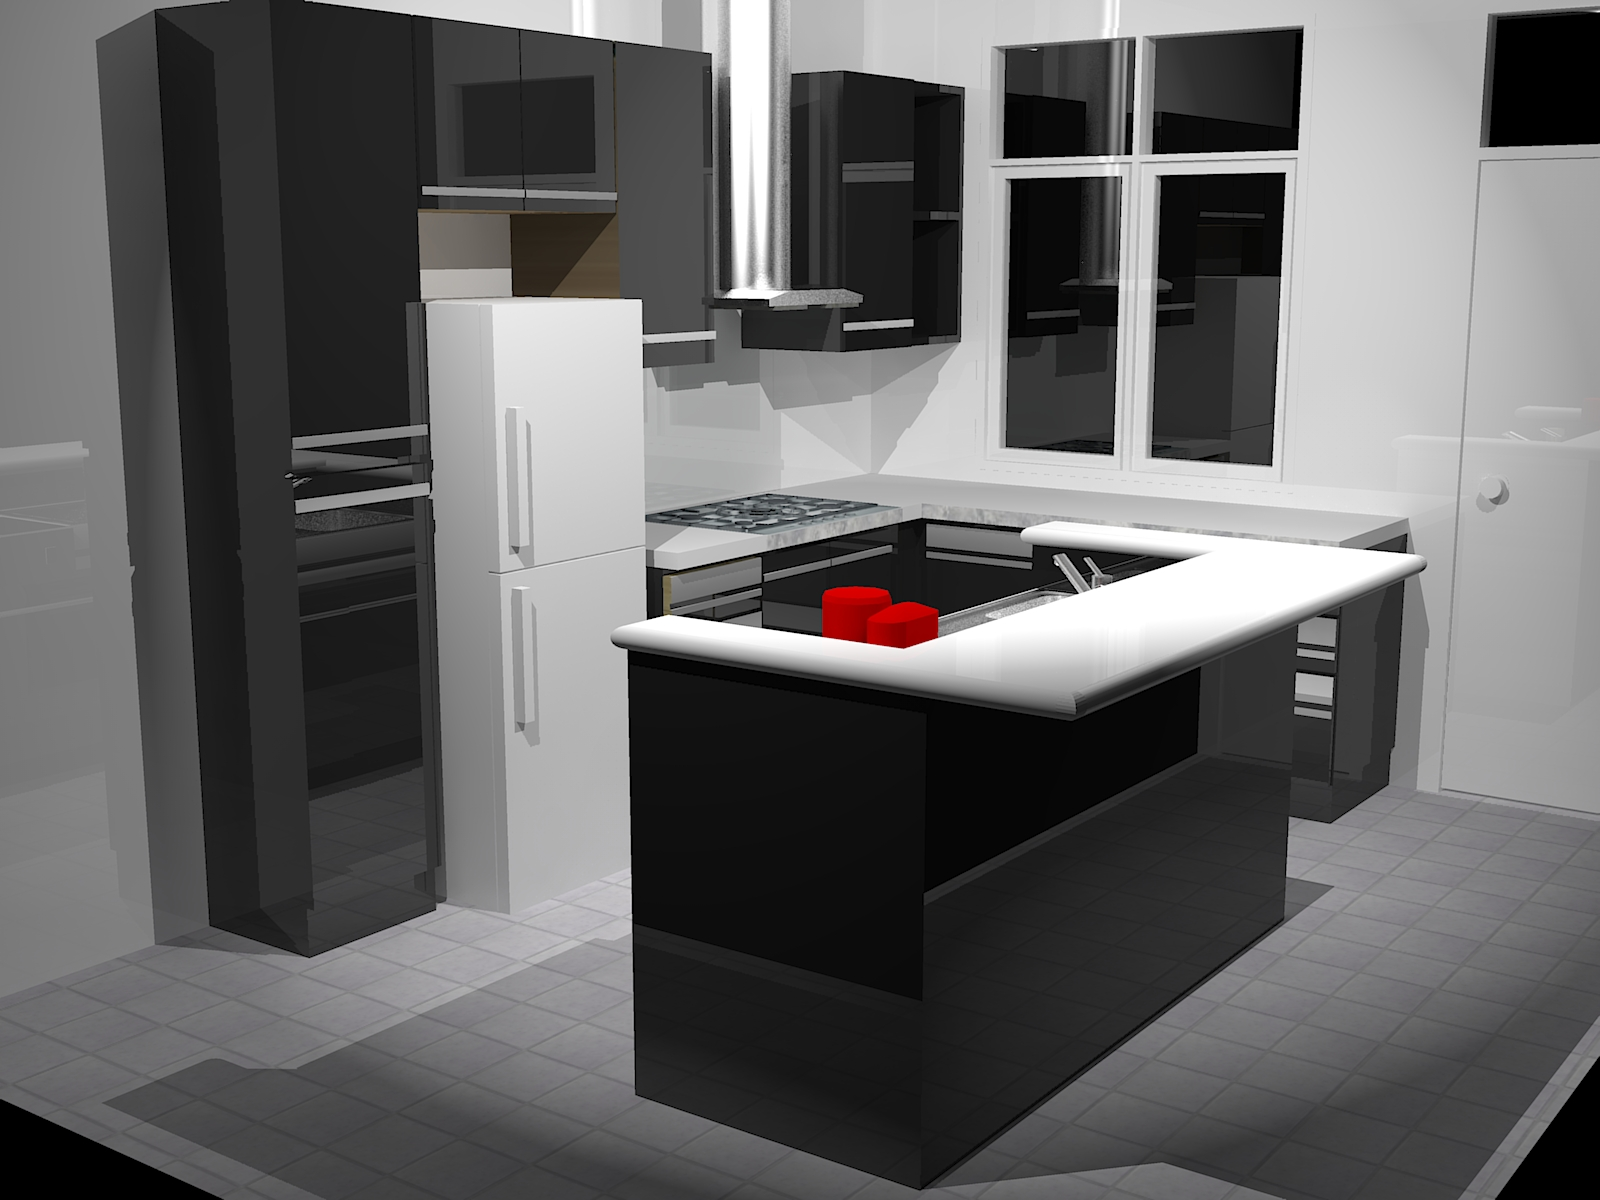 Custom kitchen craze for 10x10 kitchen layout ideas